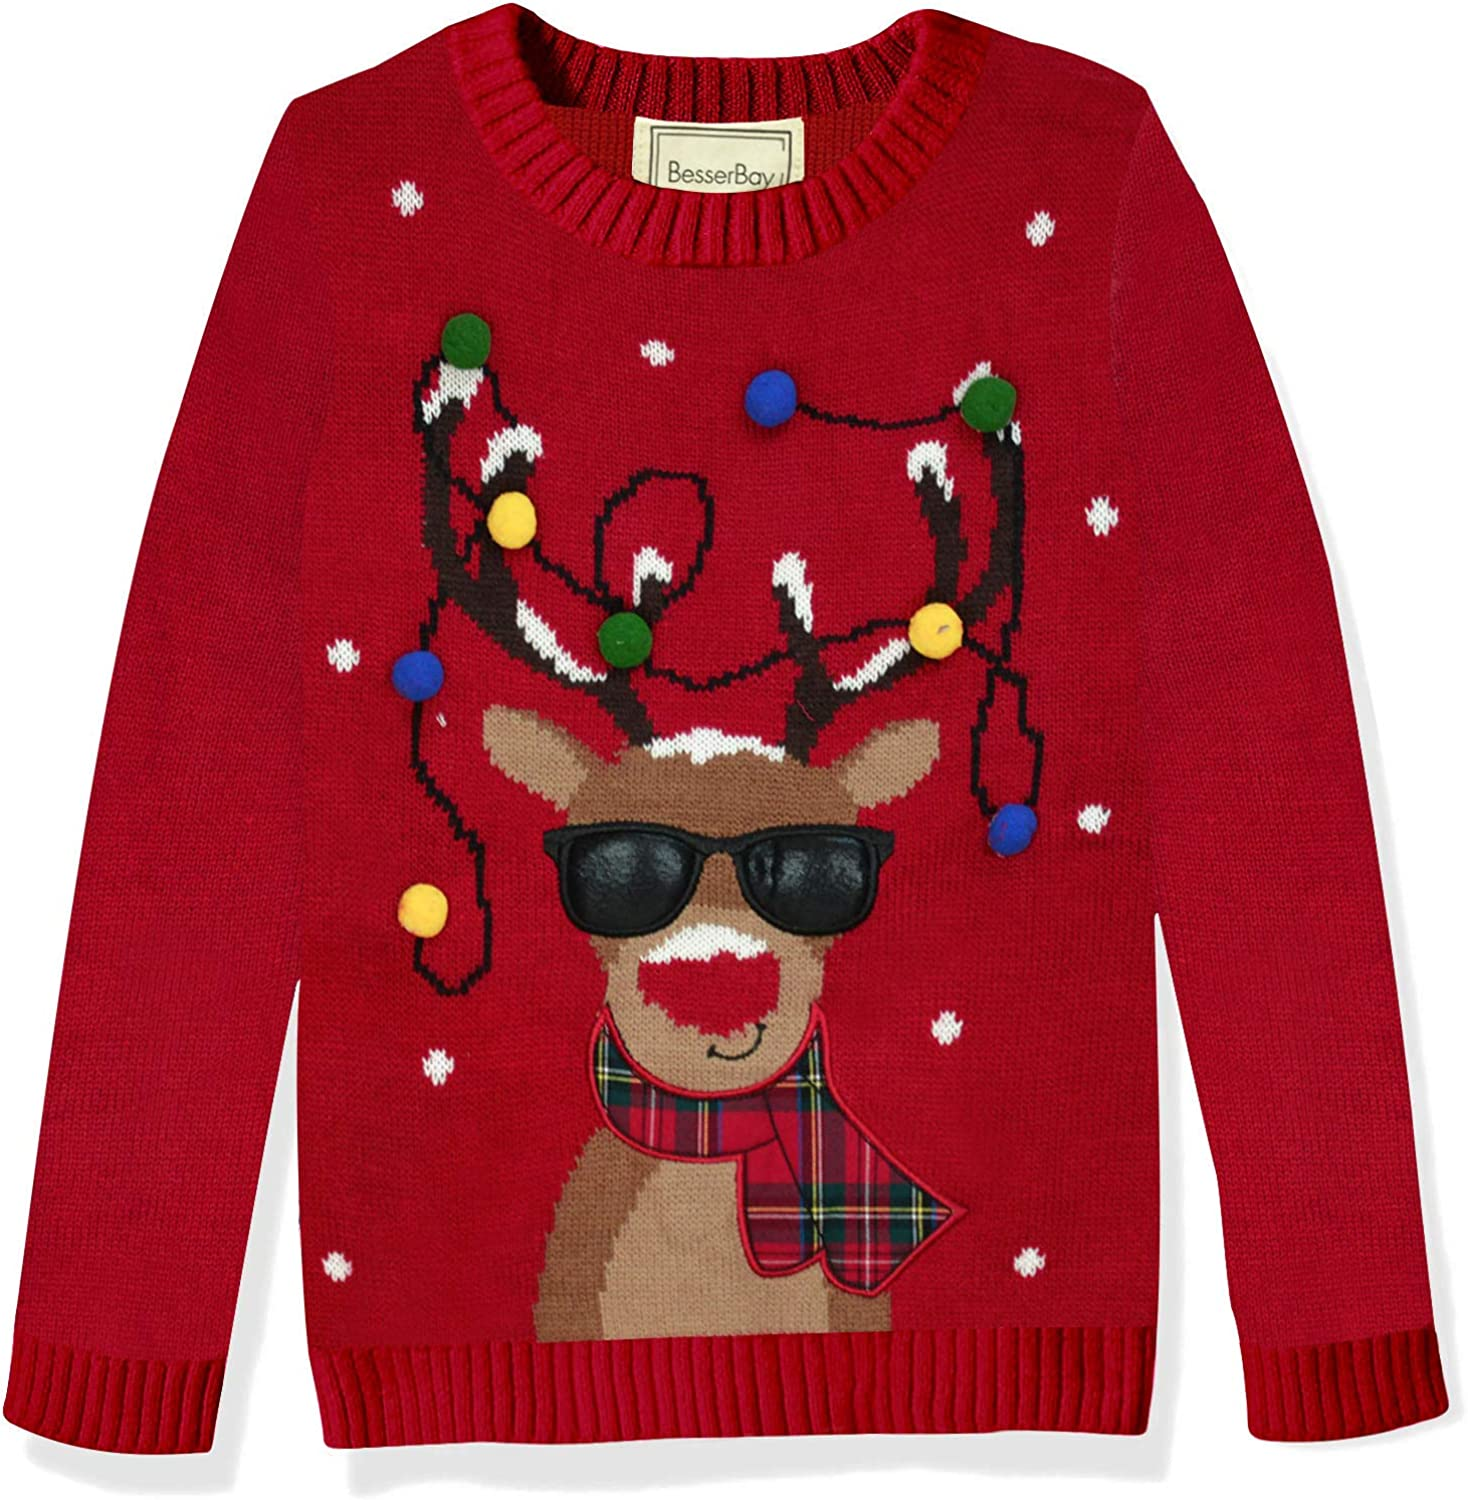 BesserBay Unisex Kid's Christmas Ugly Sweater 1-14 Years